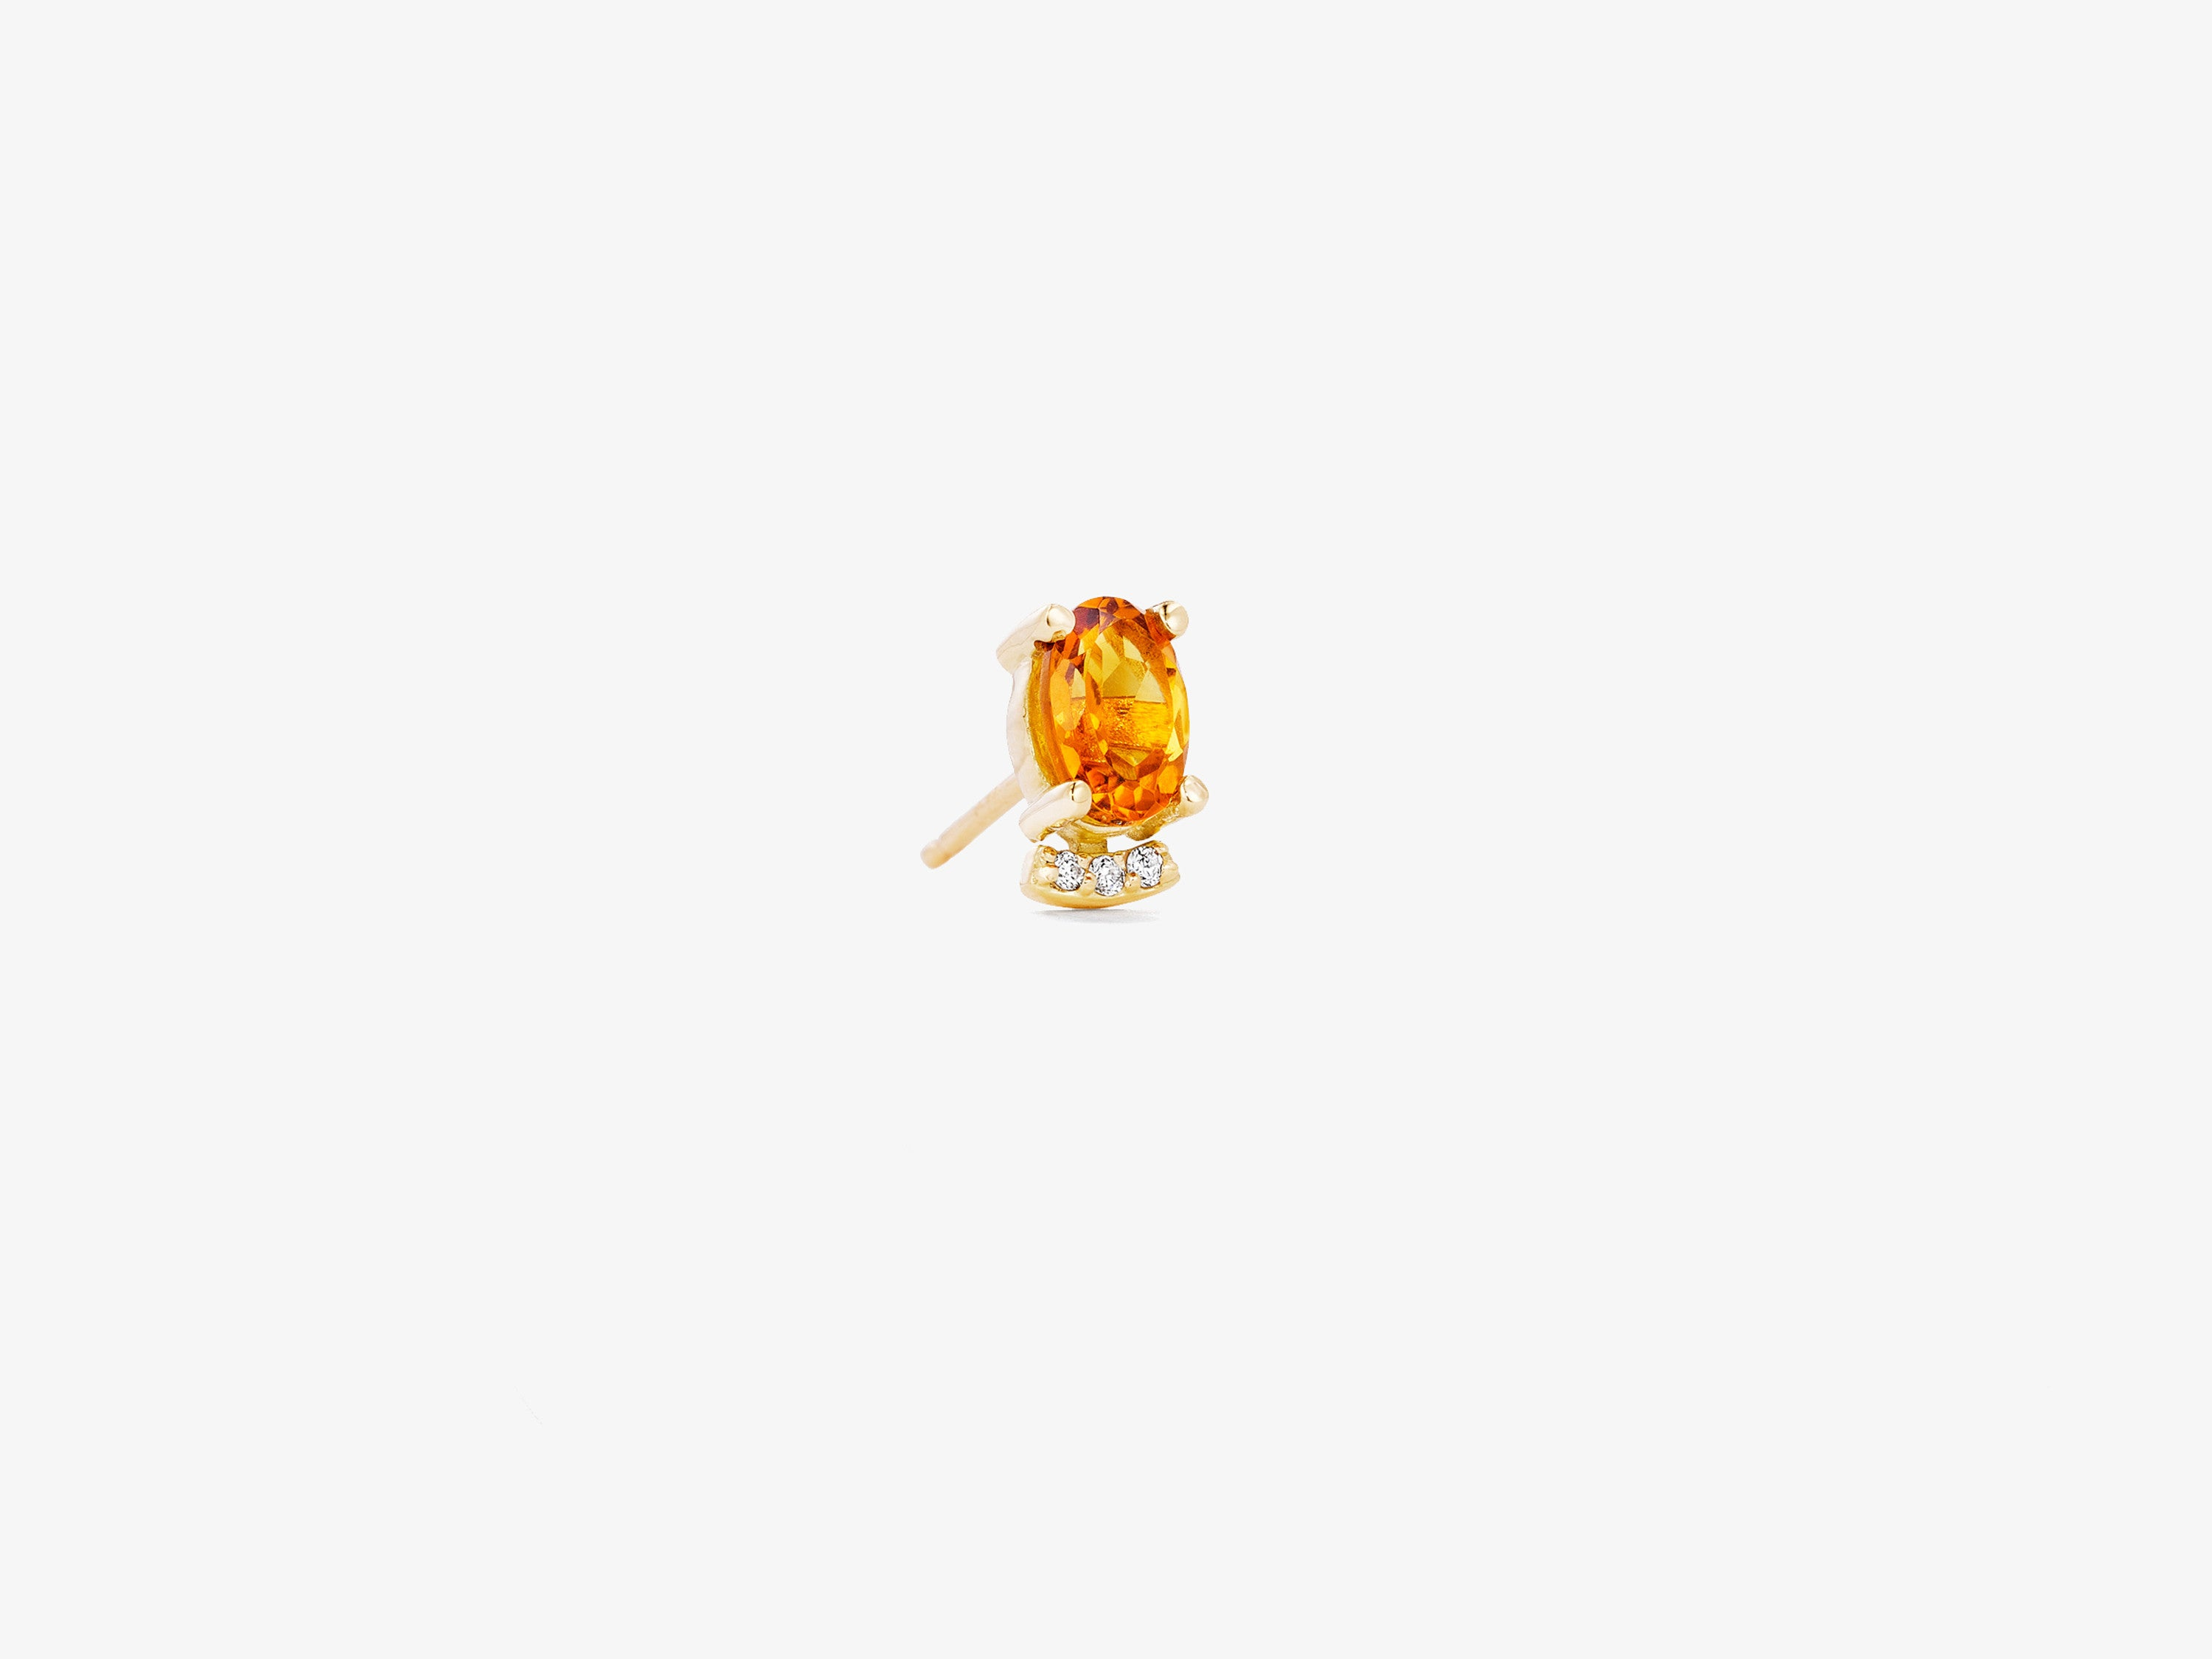 Small Single Oval Gemstone Stud with Curved Diamond Pave Bar